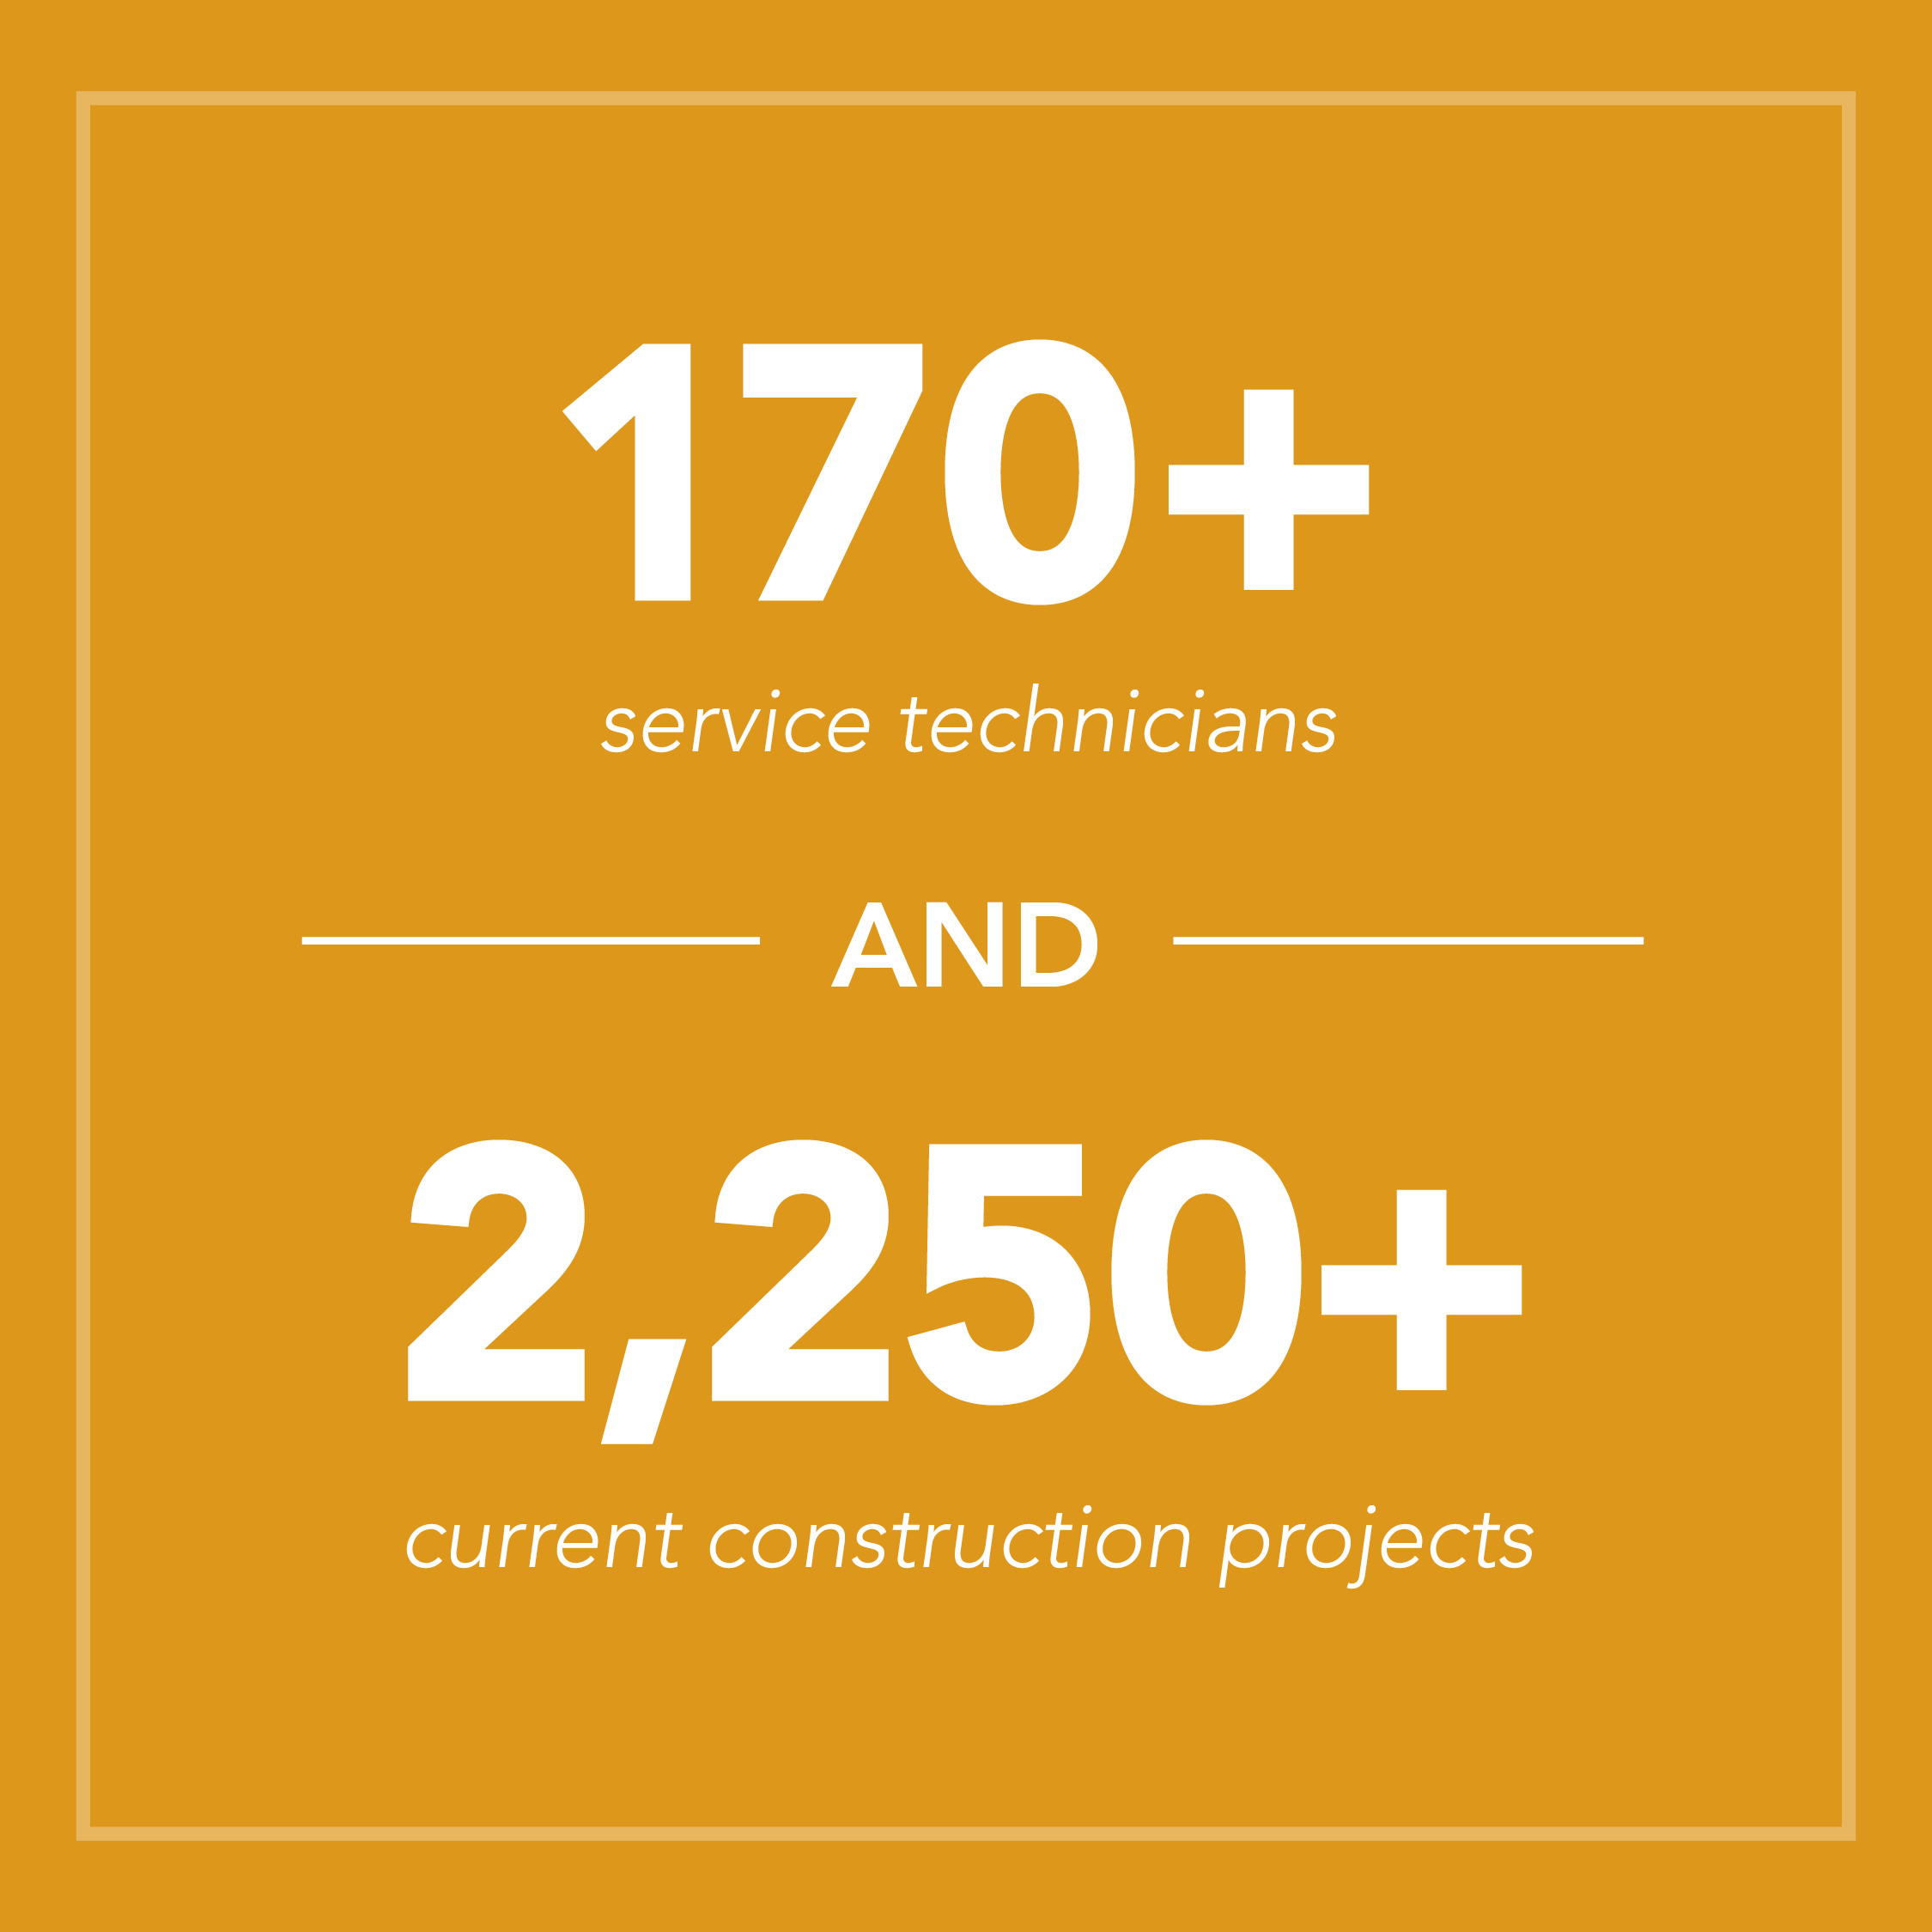 170 plus service technicians and more than 2,250 current construction projects